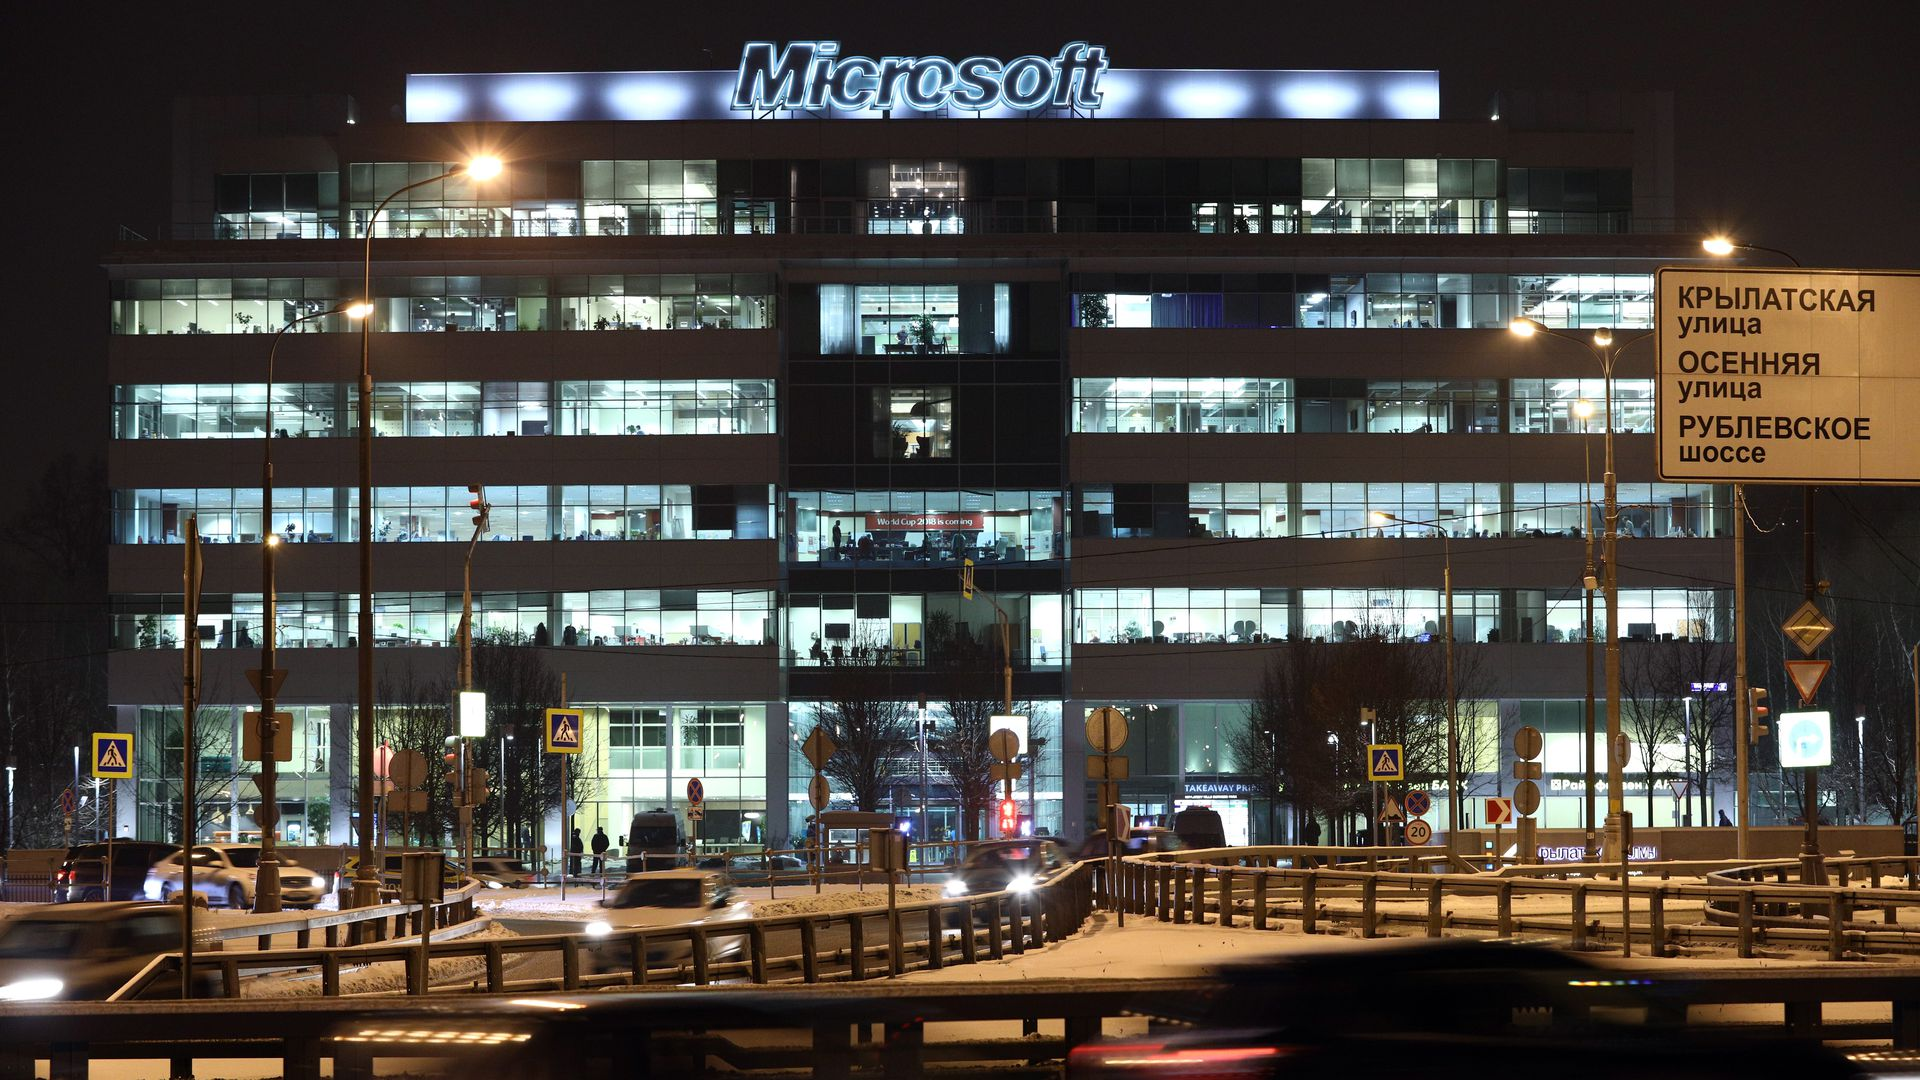 Microsoft's Russia headquarters office building at night